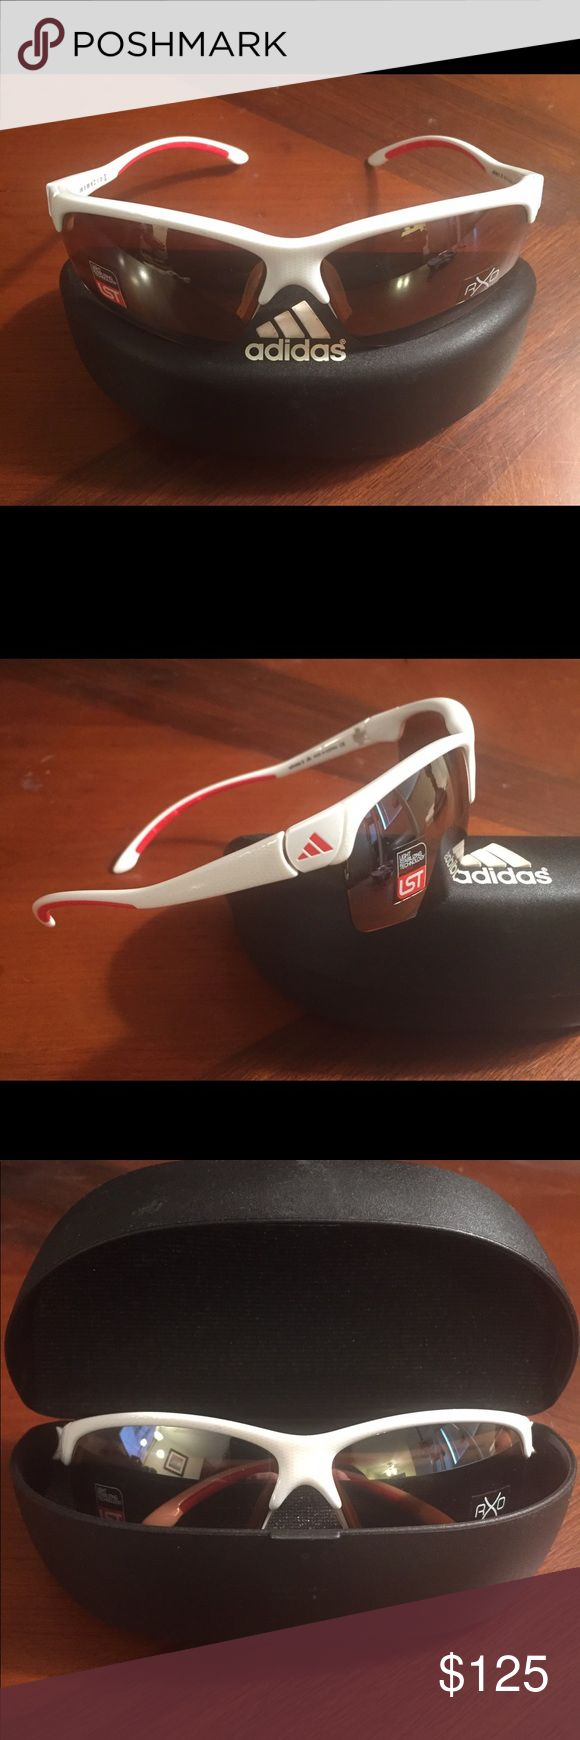 Adidas Adivista Sunglass Oh so lightweight!! These cool unisex white and red sport wrap sunglasses have great coverage. Has adjustable nose pads and comes with inserts for prescription lenses if needed. The lenses are a patented Light Stabilizing Technology (LST). Great drivers lens or for those who golf. Anybody really. Adidas Accessories Glasses